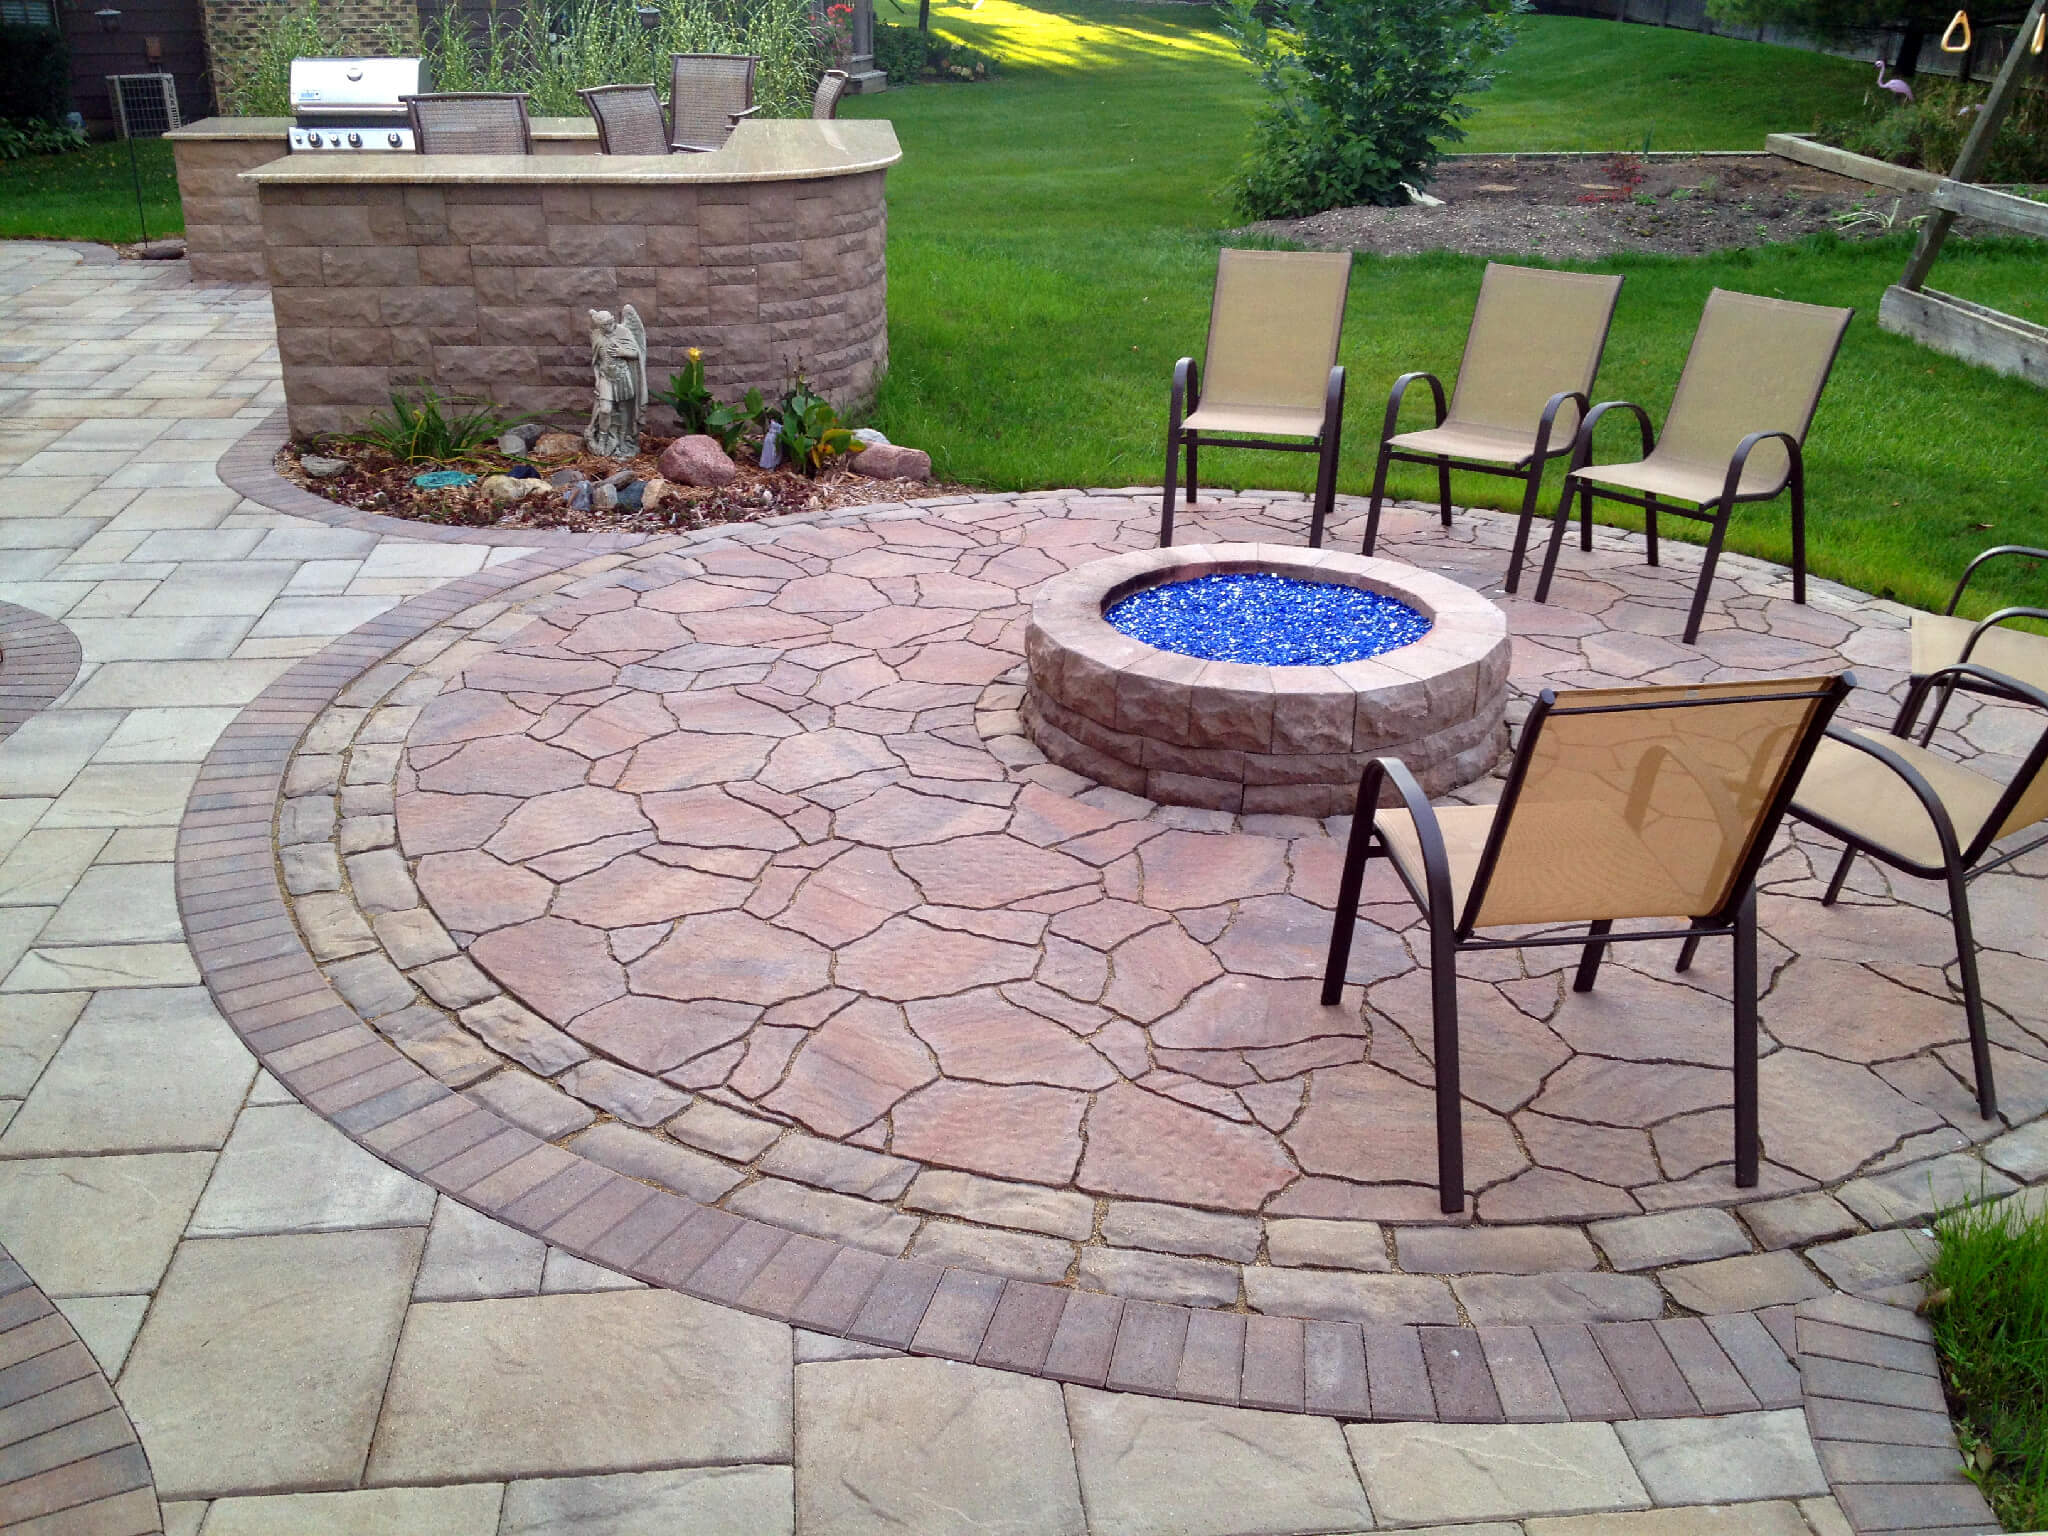 Patio with kitchen and fire pit